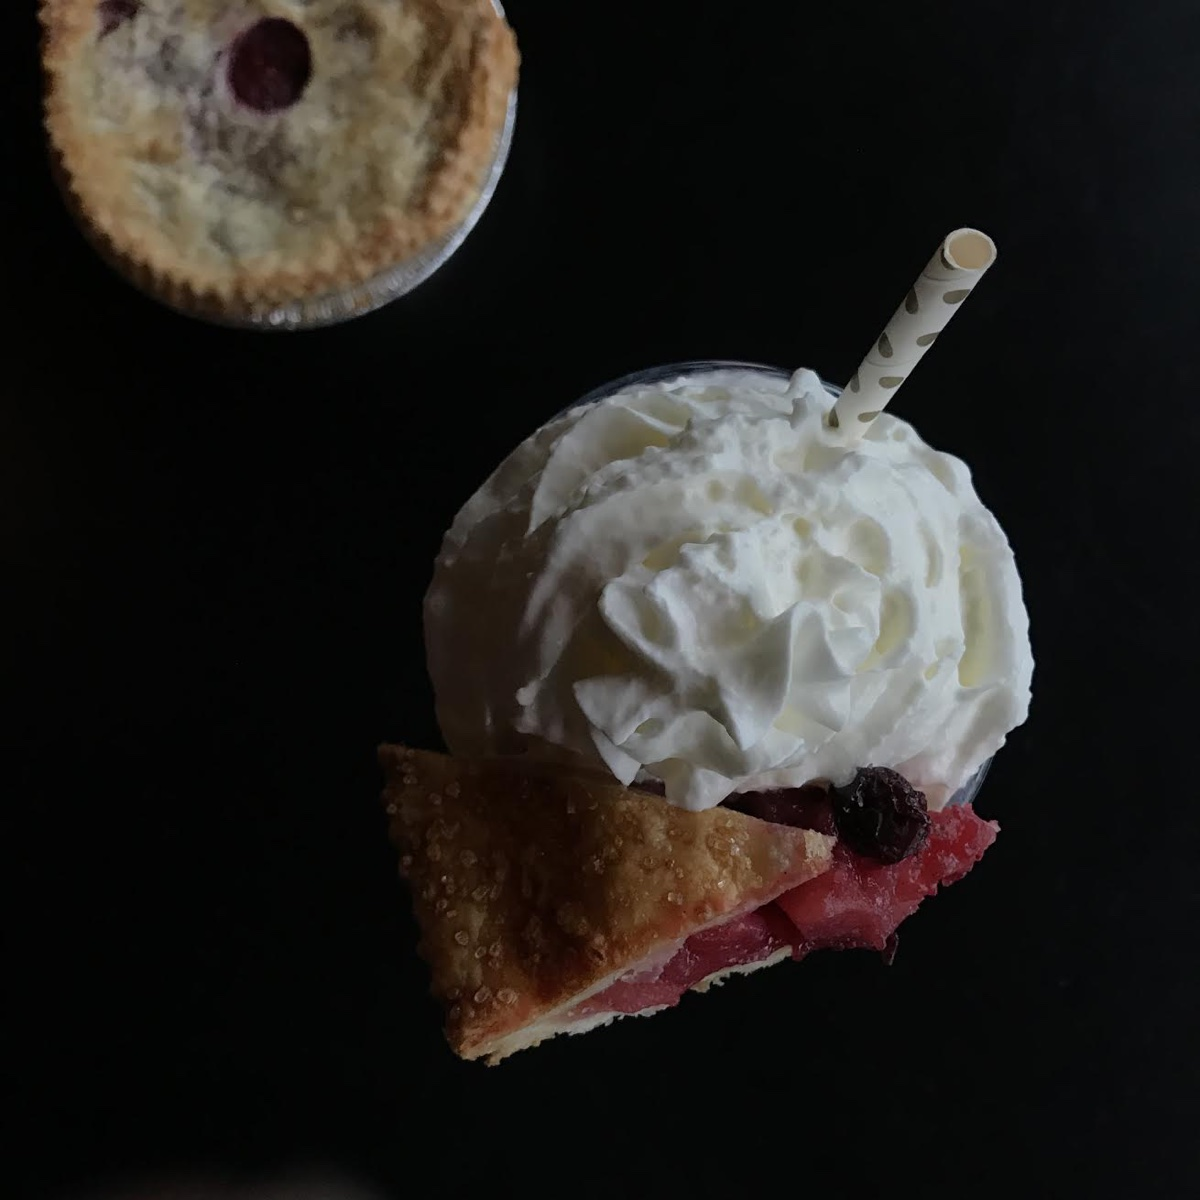 Rosebud American Kitchen and Bar's Cherry Berry Pie and milkshake Pi Day special